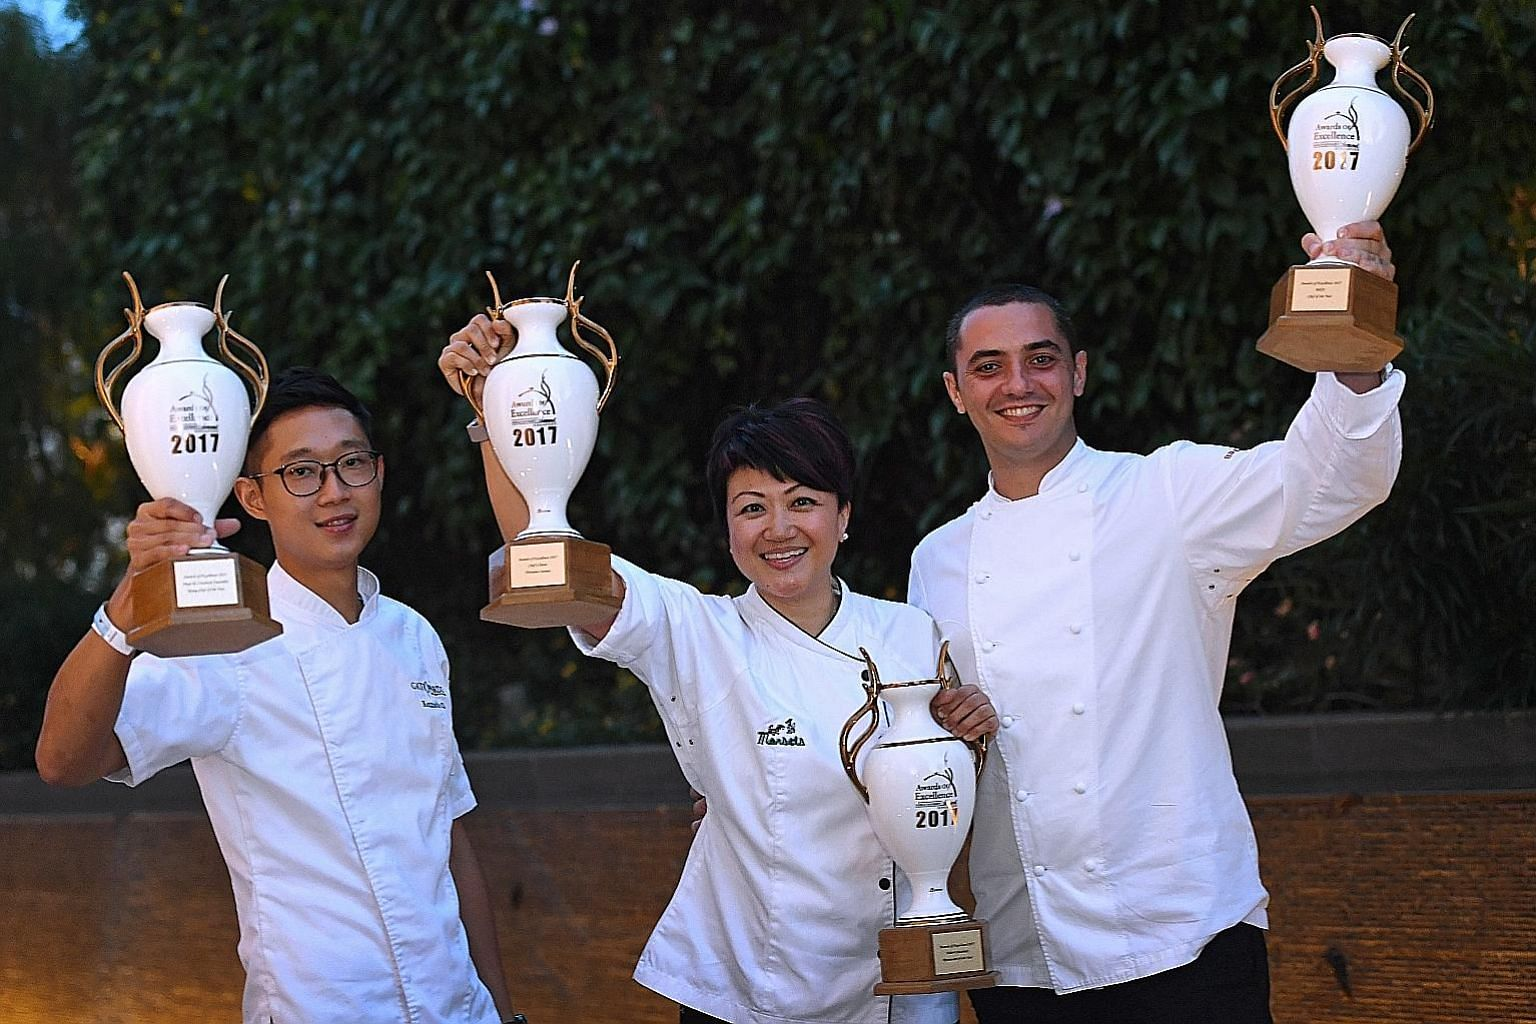 Winners all (from far left): Chef de Cuisine of Gattopardo Ristorante di Mare, Kenneth Oh, who took home the Rising Chef of the Year award; Petrina Loh, chef-owner of Morsels, which won Restaurant of the Year and Chef's Choice (Western Cuisine) award